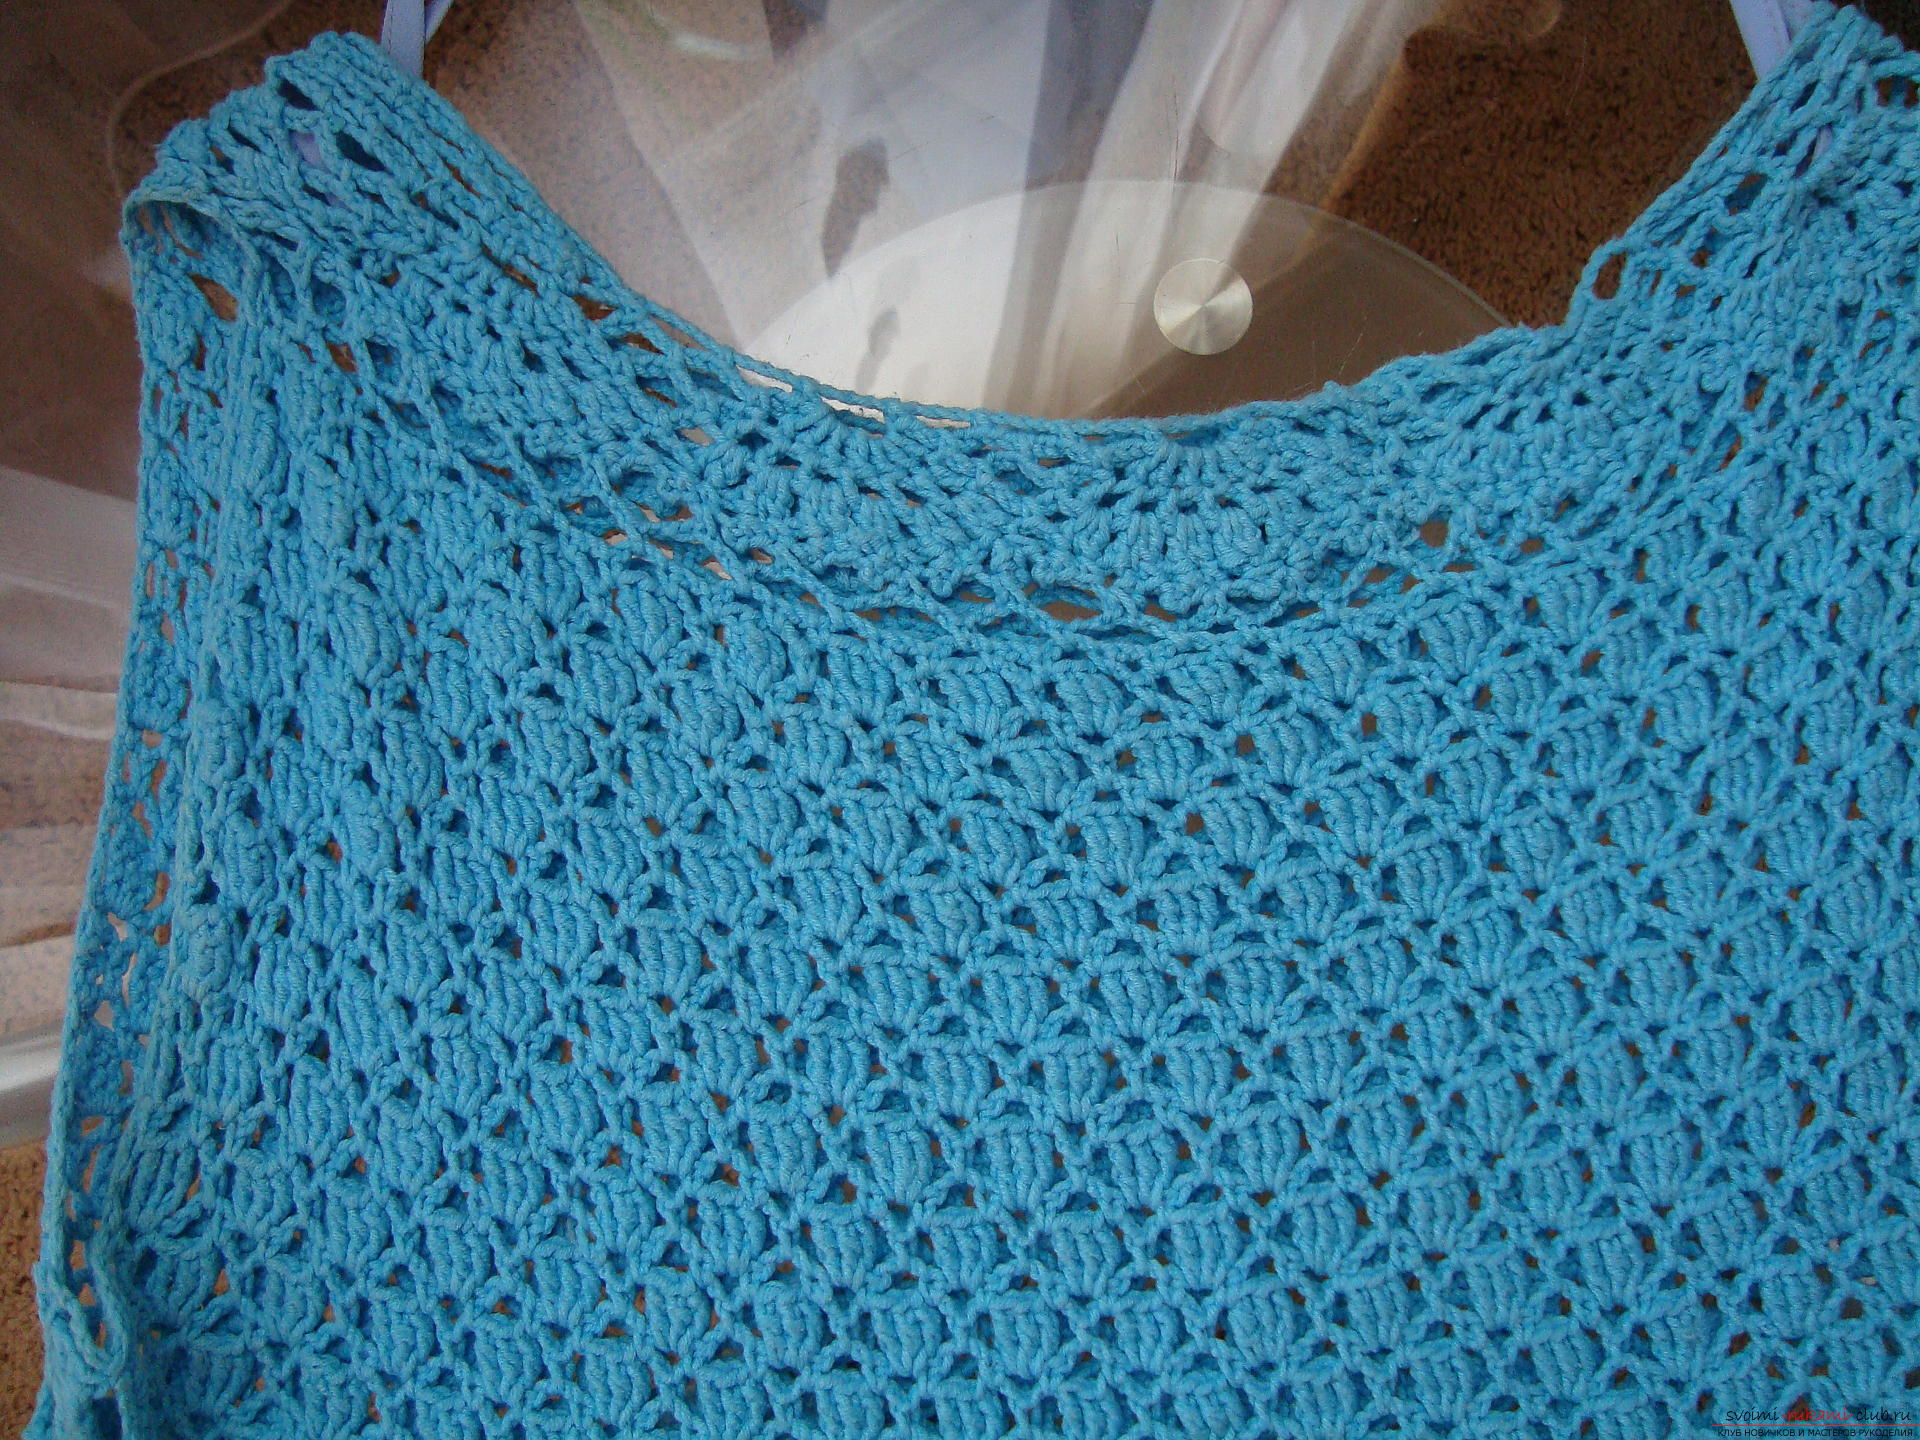 Step-by-step instruction on the binding of a turquoise dress with a crochet. Photo Number 11